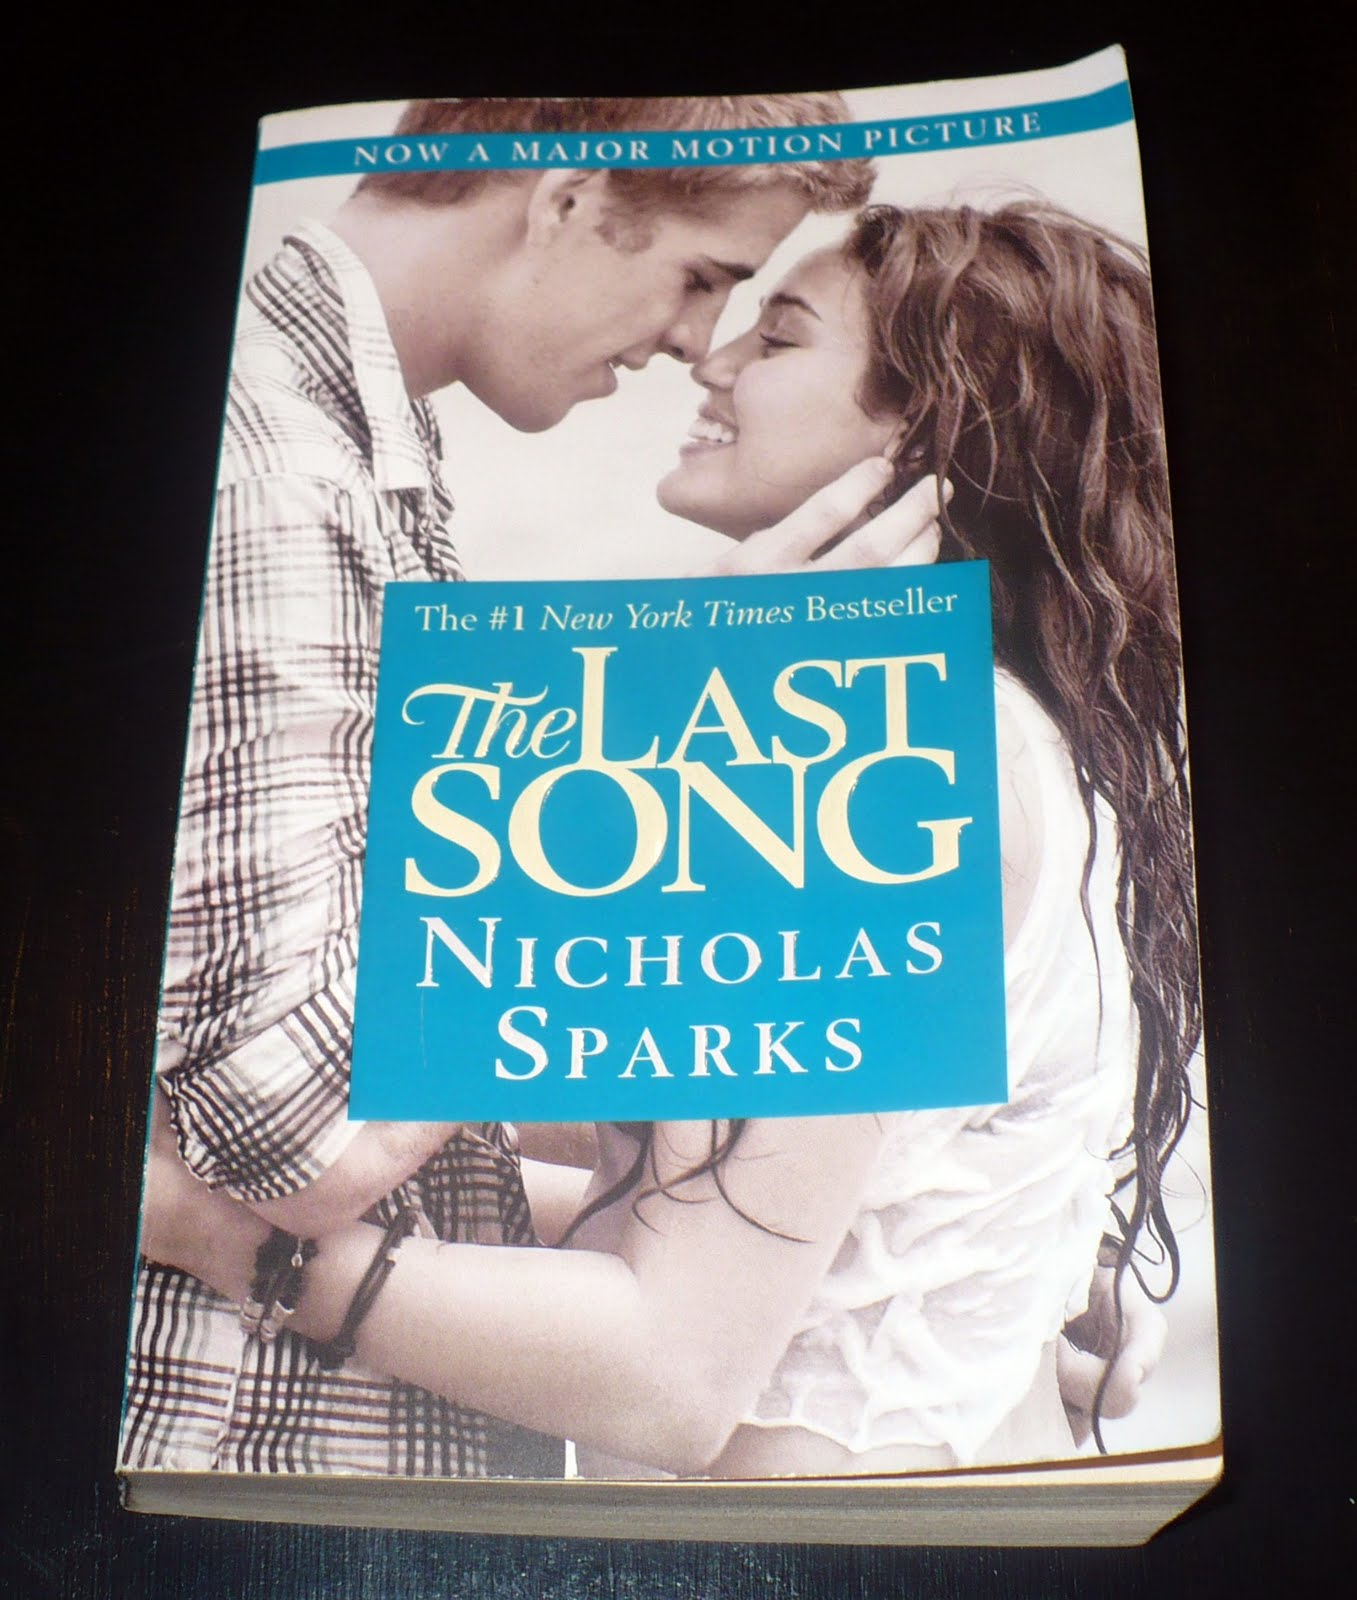 nicholas sparks writing style For nicholas sparks, the secret to success on both bookshelves and the big   here, he discusses writing for his readers, crossing genres, and.